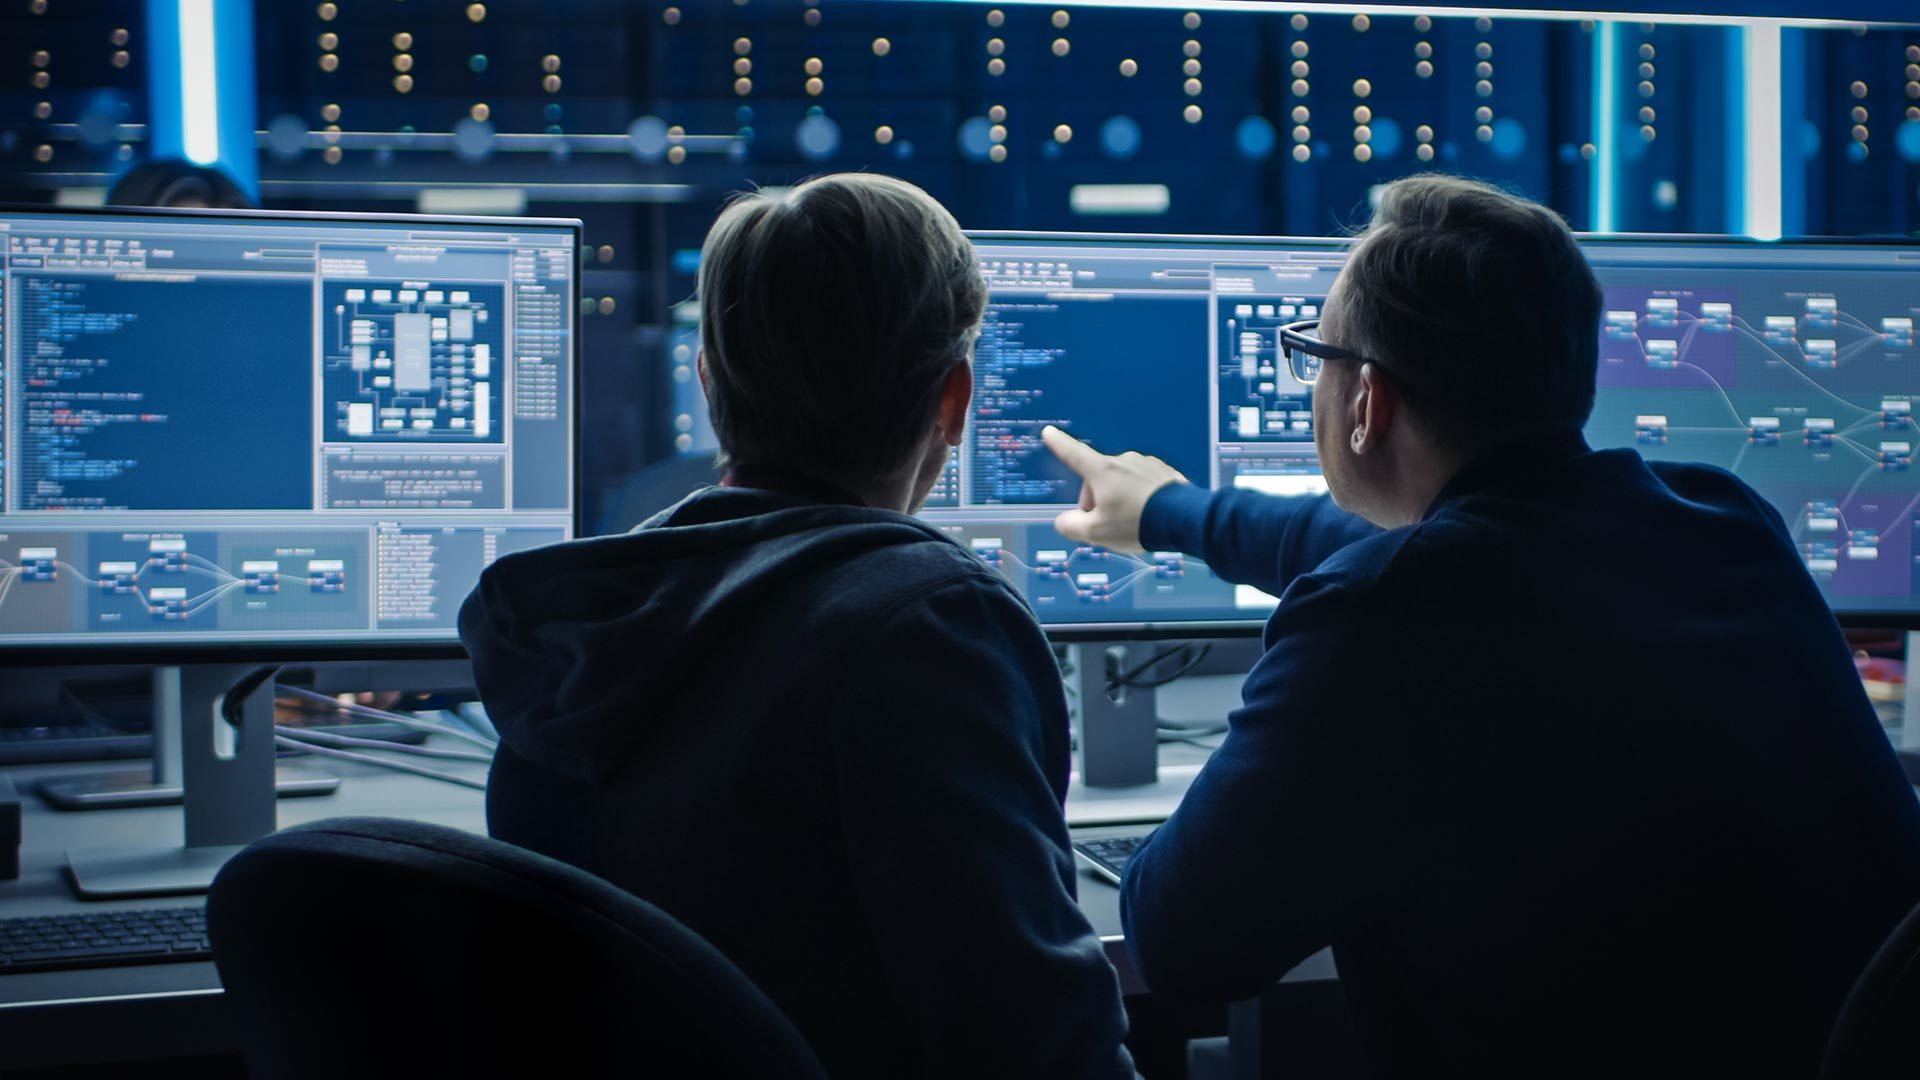 Two people looking at three monitors pointing to the screen representing the DeepMind team doing AI research.